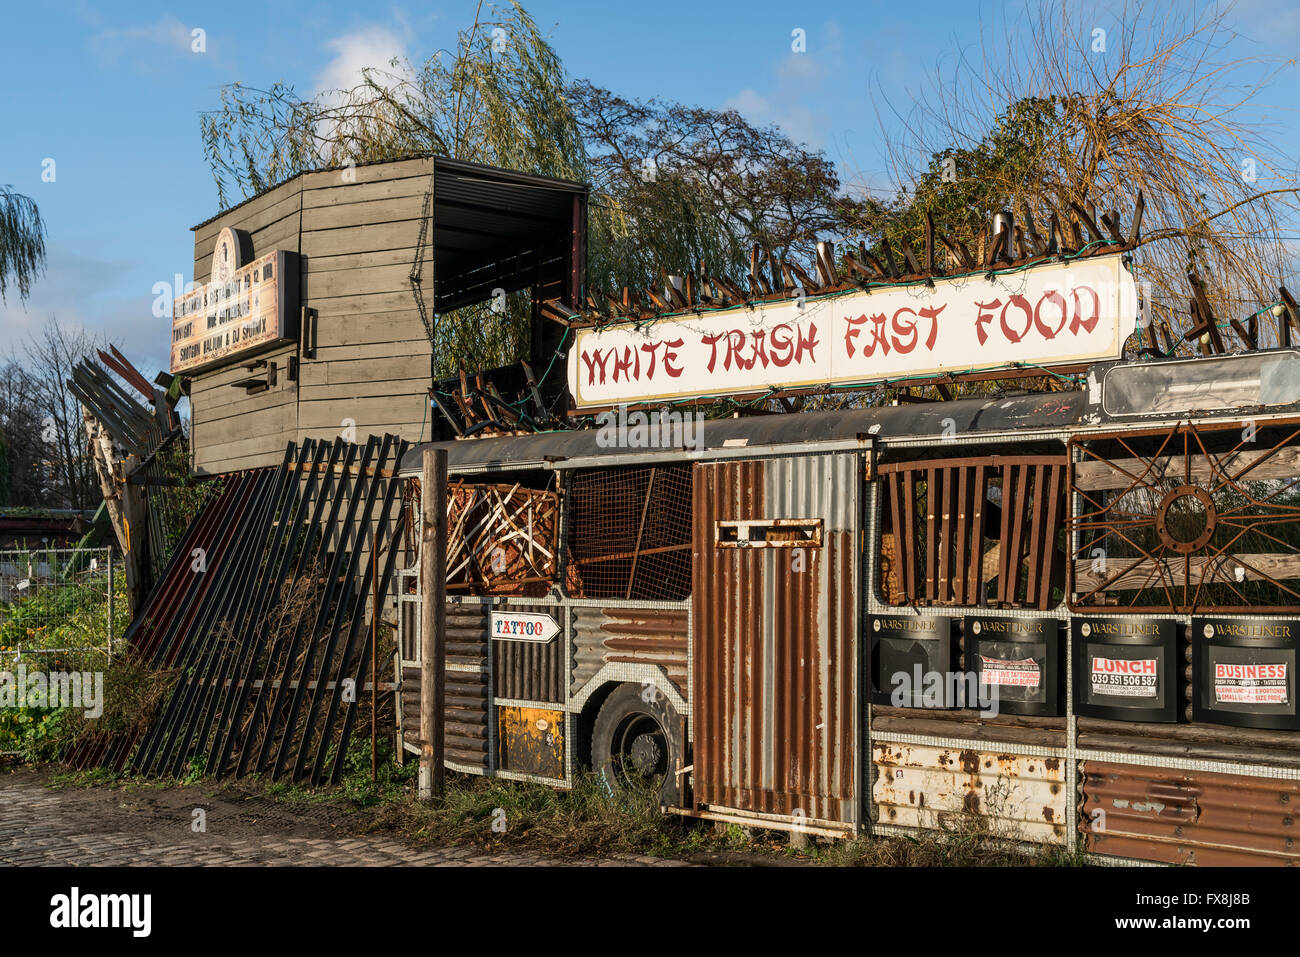 White Trash Fast Food, Restaurant, Arena , Alt Treptow, Berlin - Stock Image